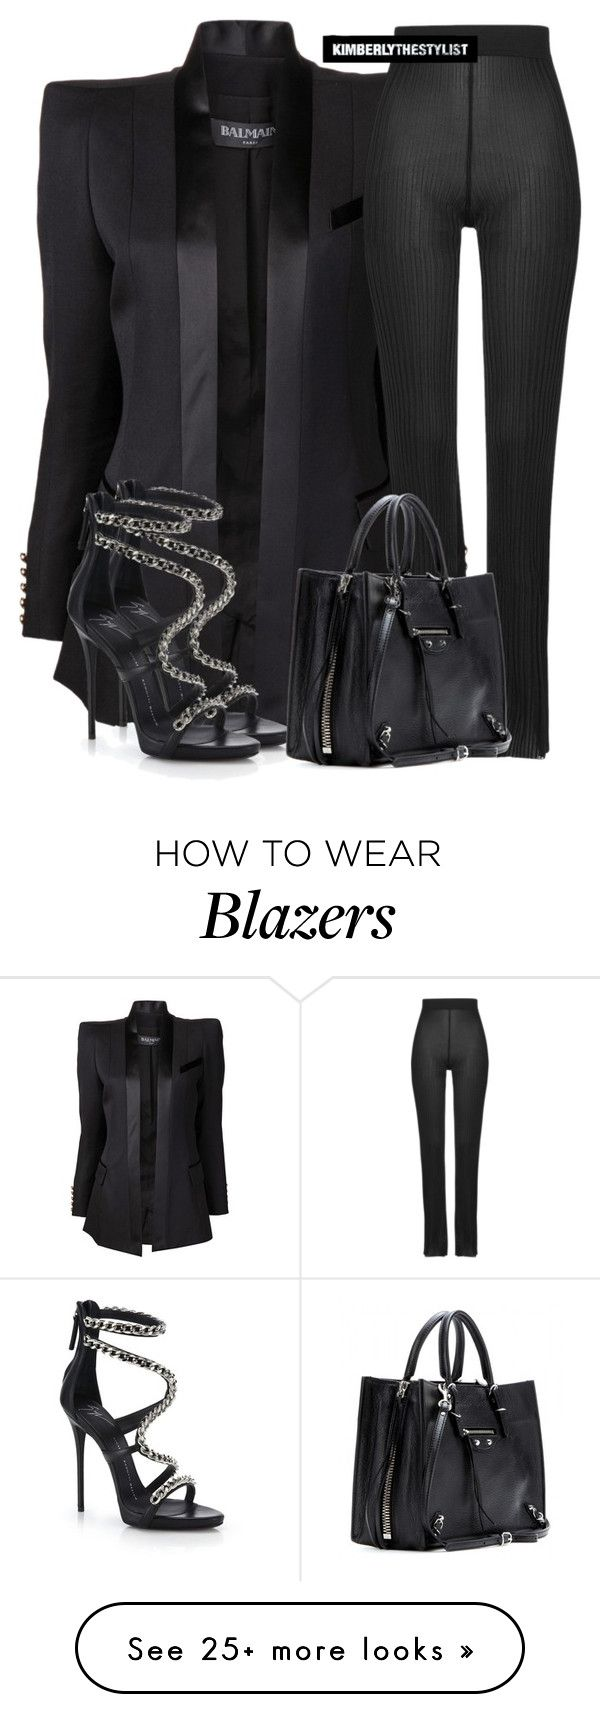 Untitled #2567 by whokd on Polyvore featuring Balmain, Giuseppe Zanotti, Balenciaga, women's clothing, women, female, woman, misses and juniors